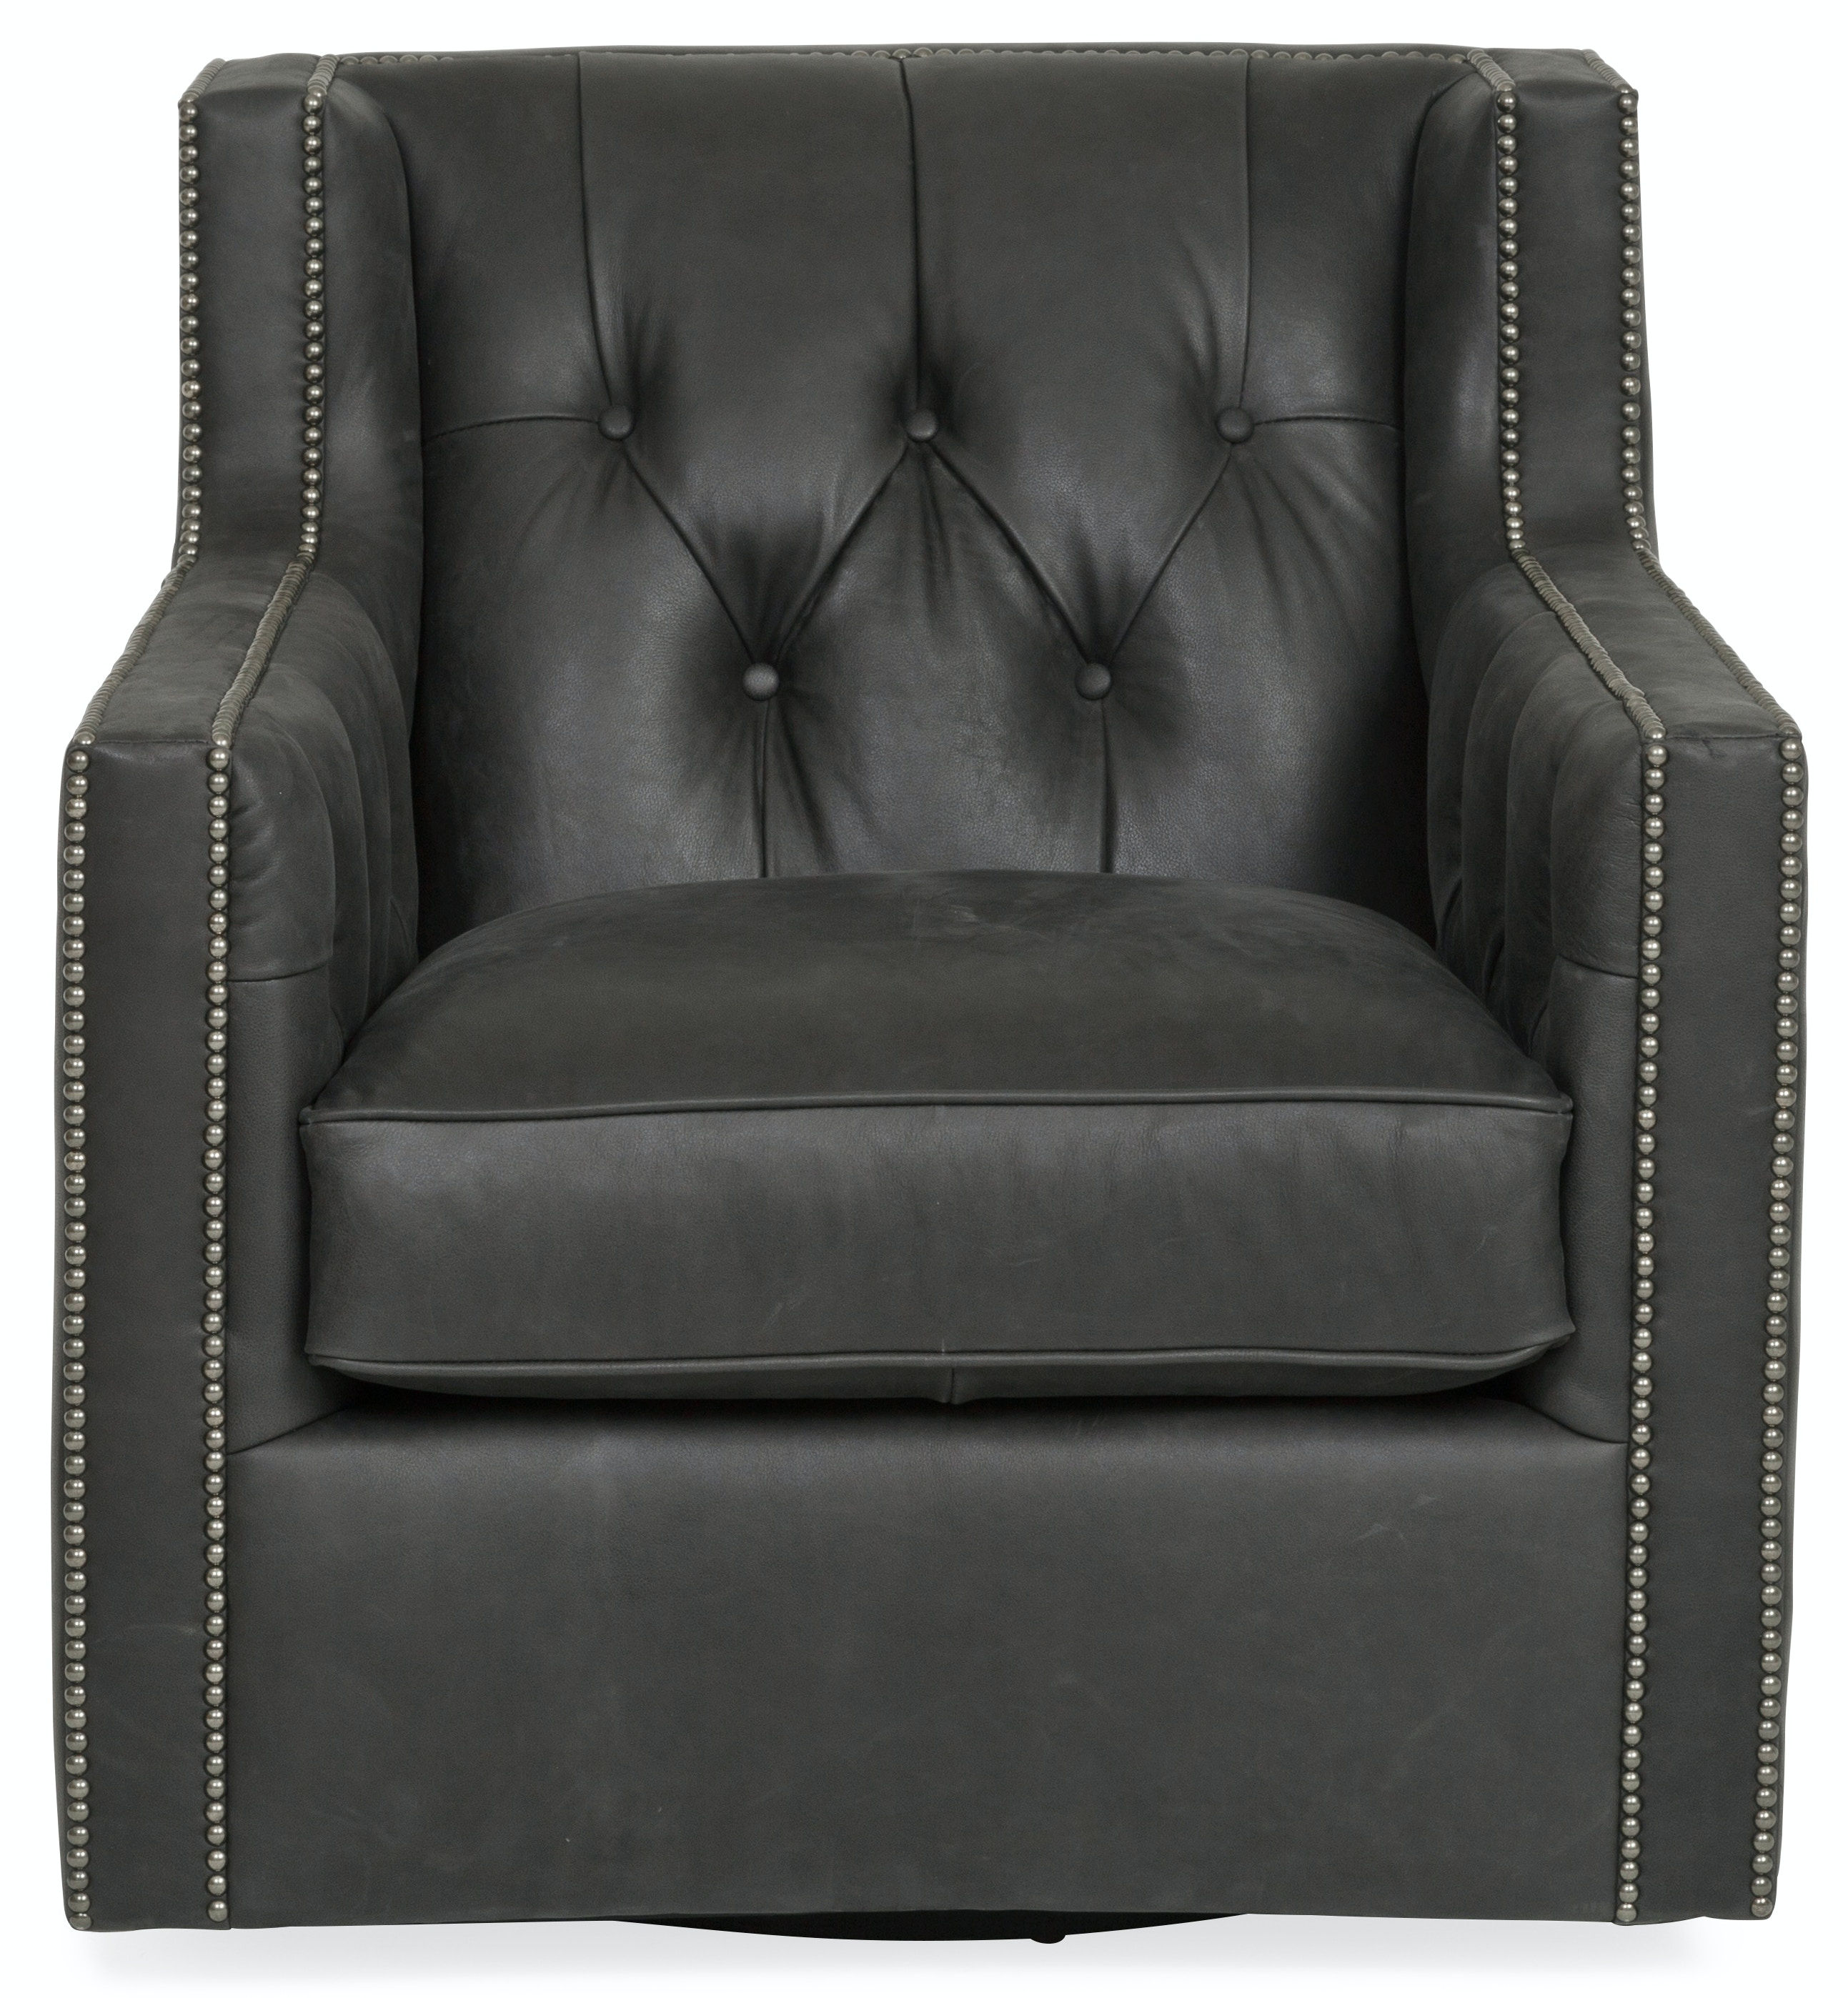 Candace Leather Swivel Chair ST:490445